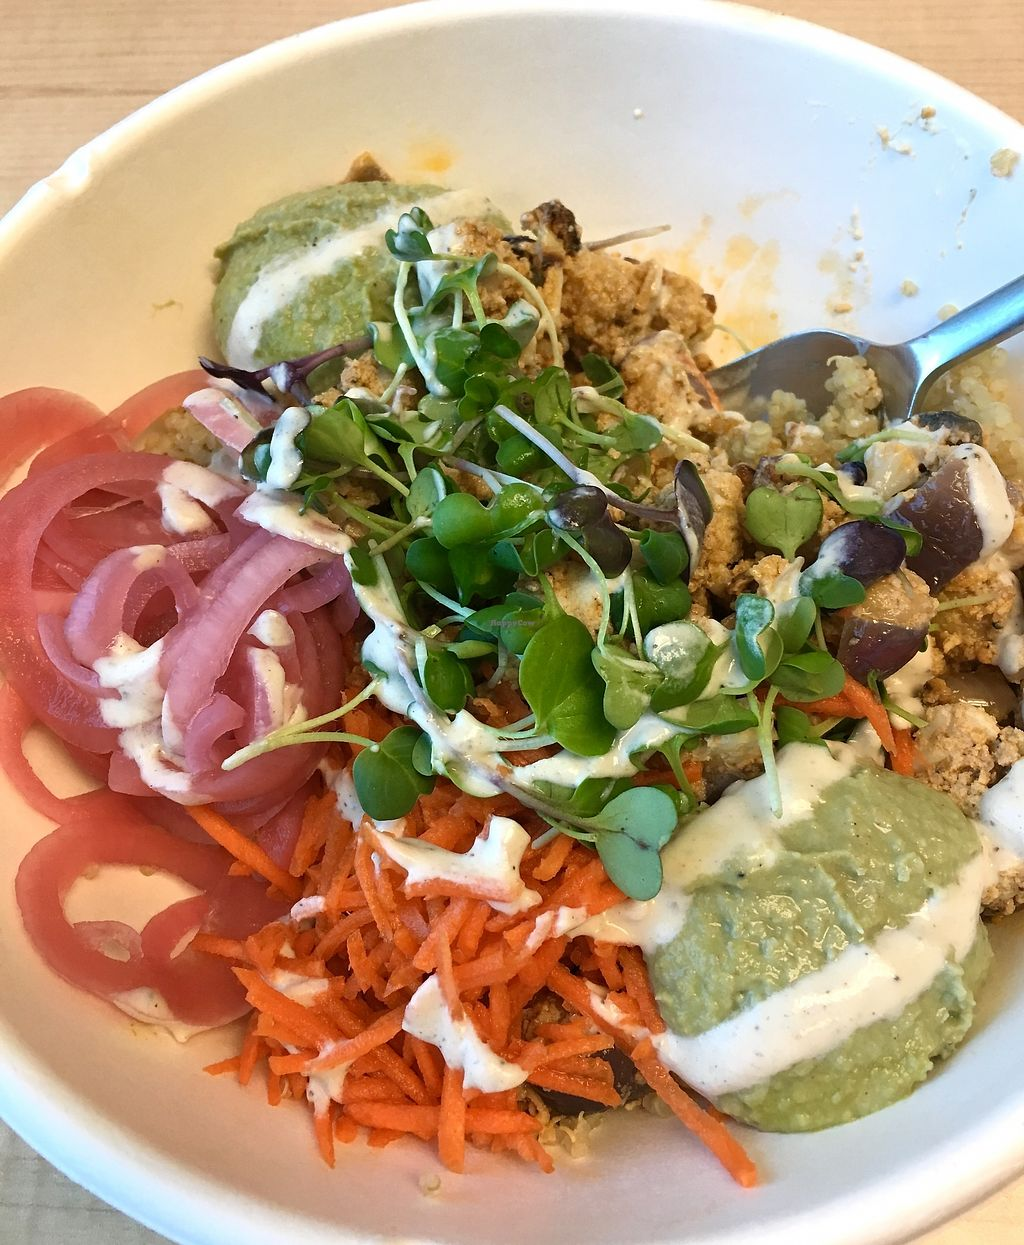 """Photo of Glory Juice - W 4th  by <a href=""""/members/profile/vegan%20frog"""">vegan frog</a> <br/>Roasted cauliflower salad <br/> October 13, 2017  - <a href='/contact/abuse/image/96928/314722'>Report</a>"""